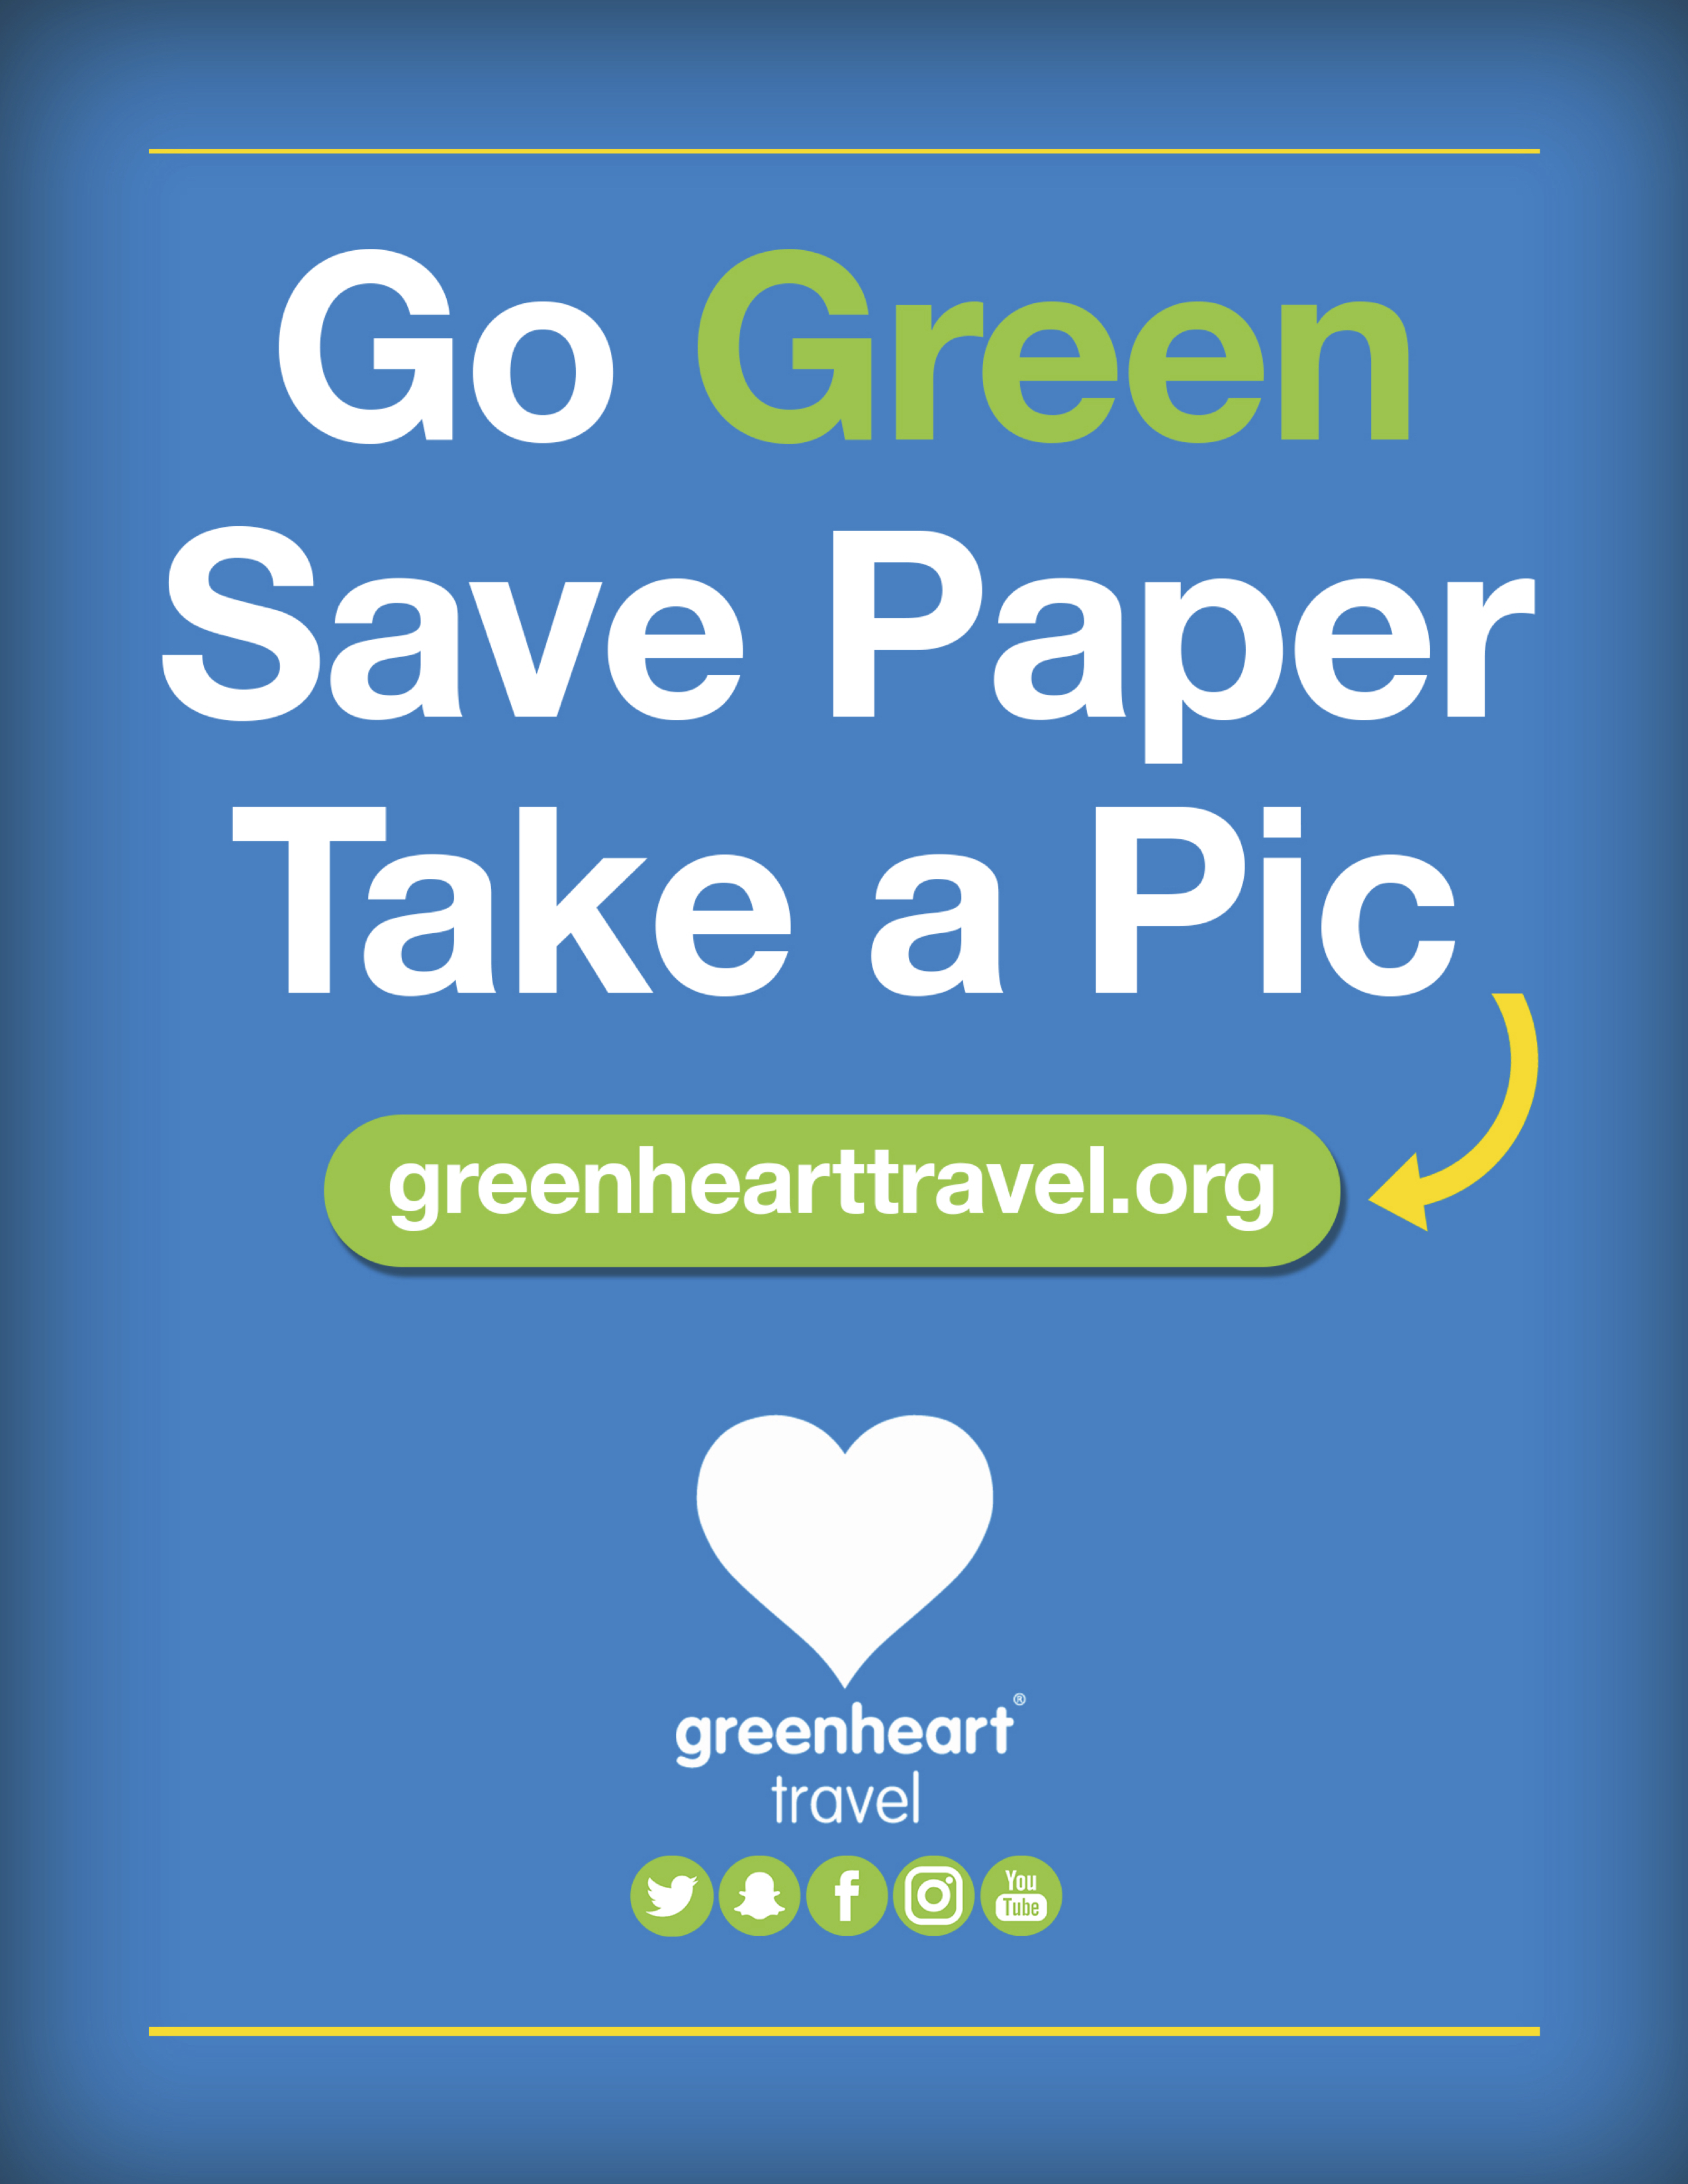 Greenheart Travel Go Green Flyer